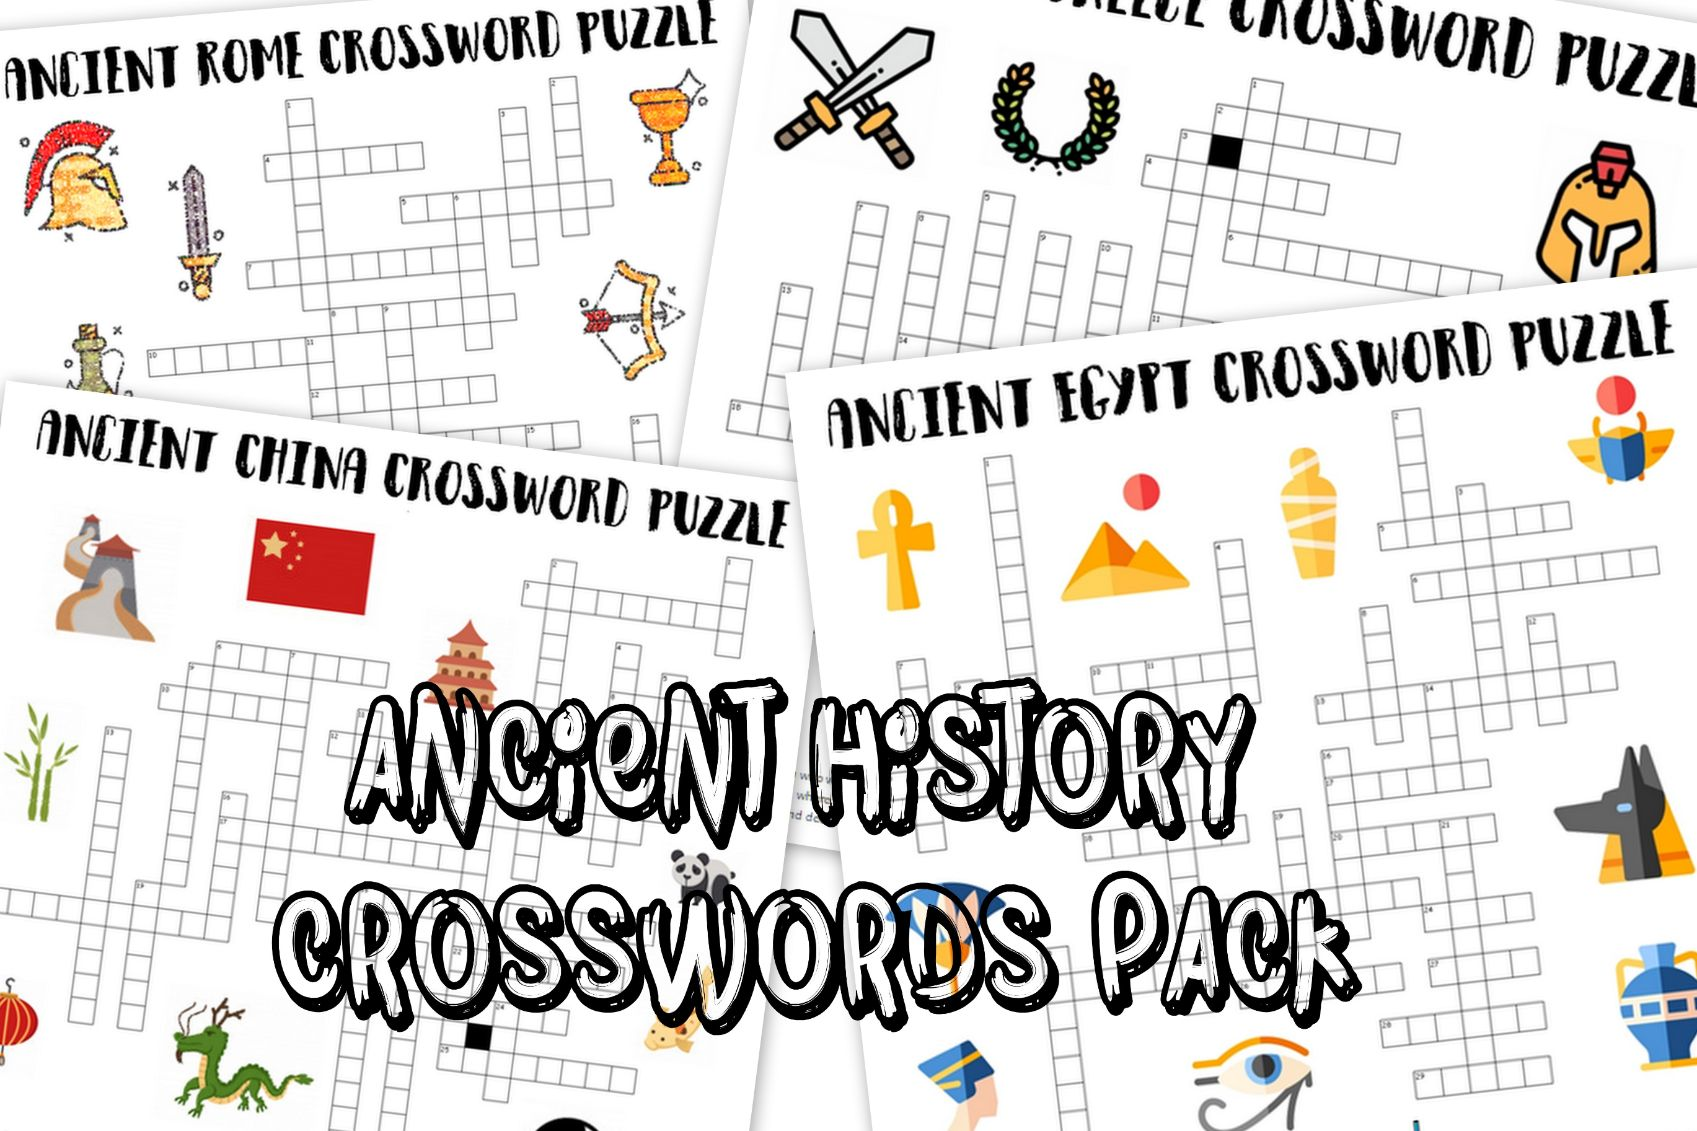 Ancient History A3 Crossword Puzzles Pack